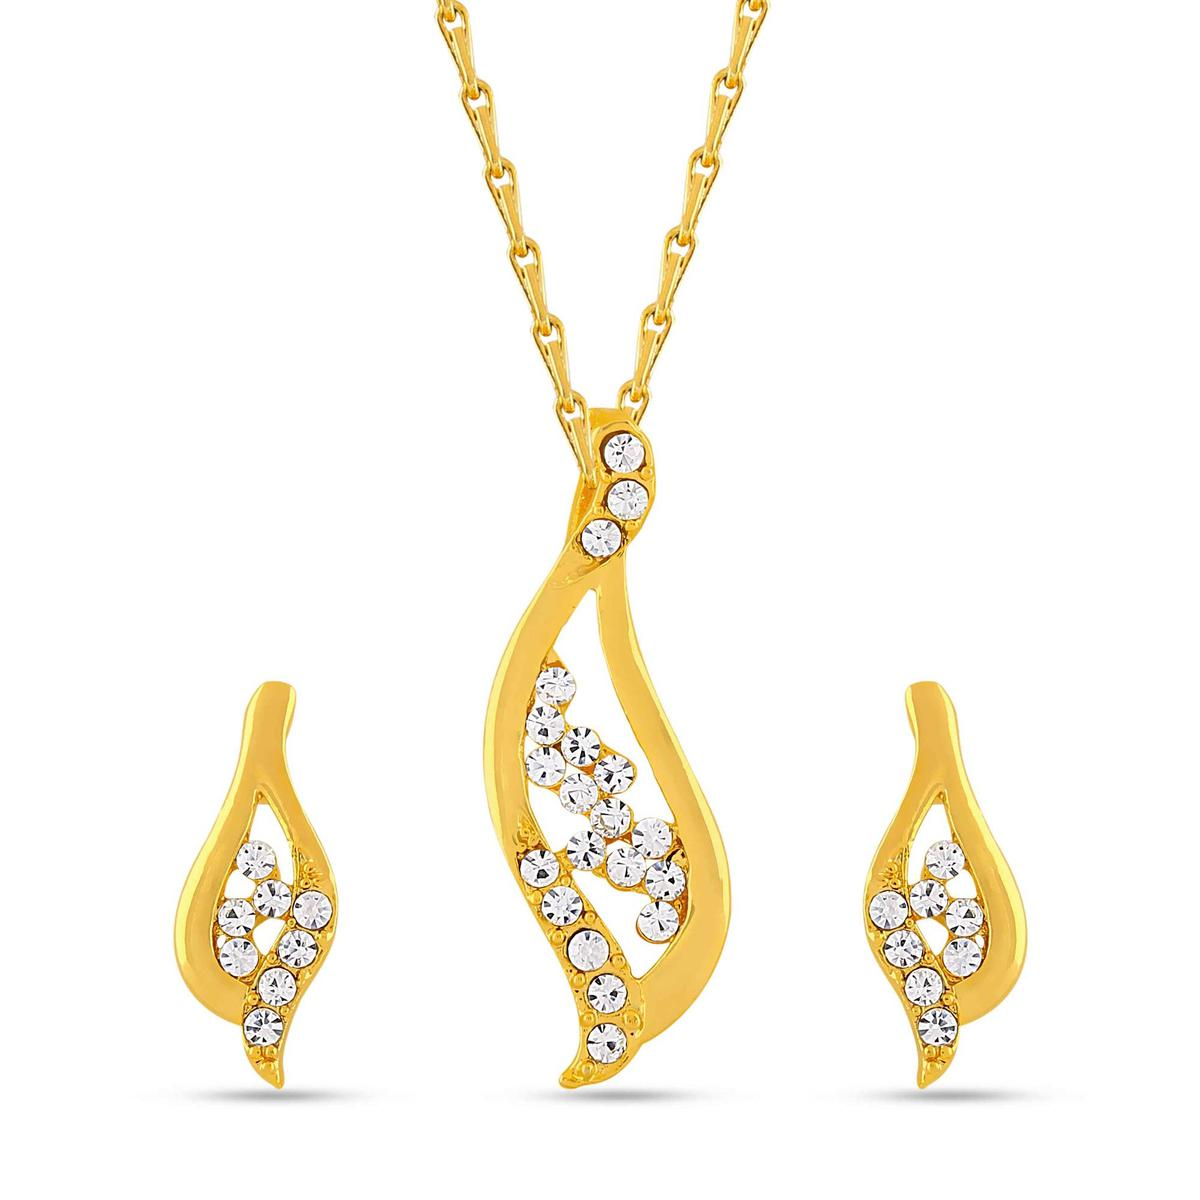 Blooming Gold plated stone studded pendant set with chain